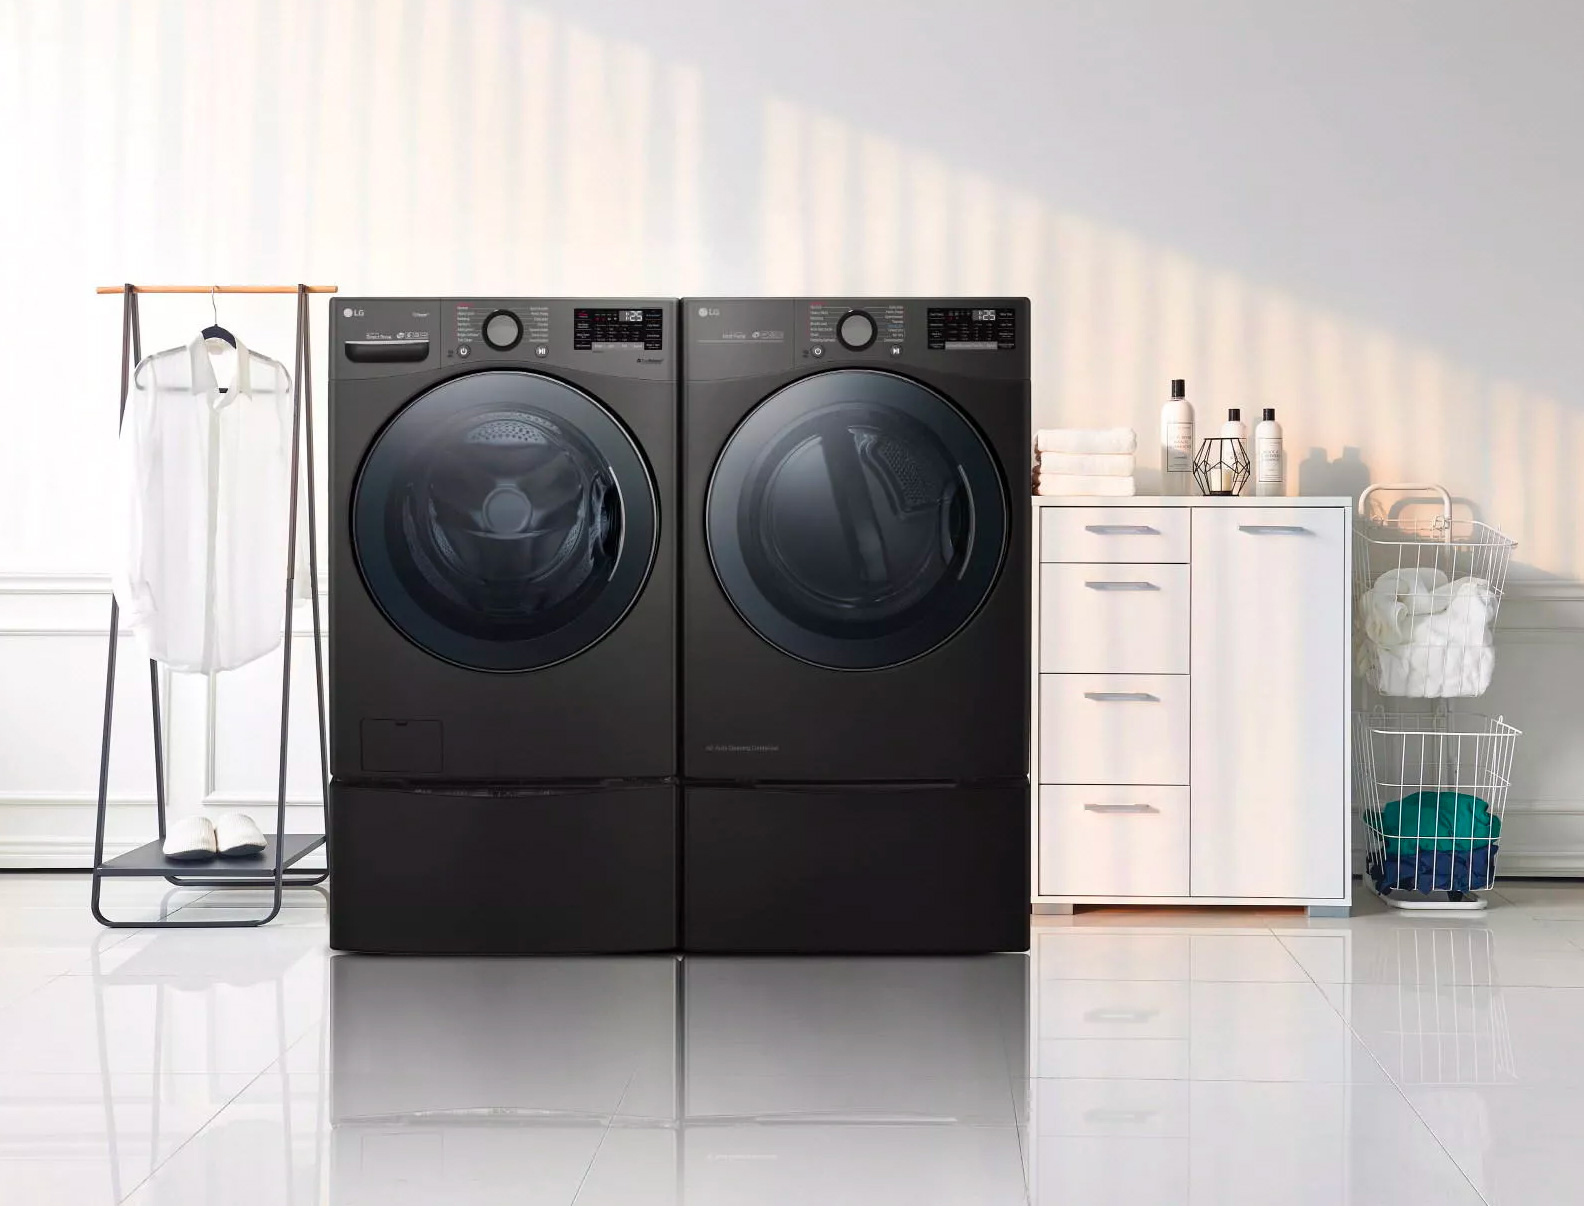 LG Introduces Bigger, Better TwinWash Laundry Appliances at werd.com